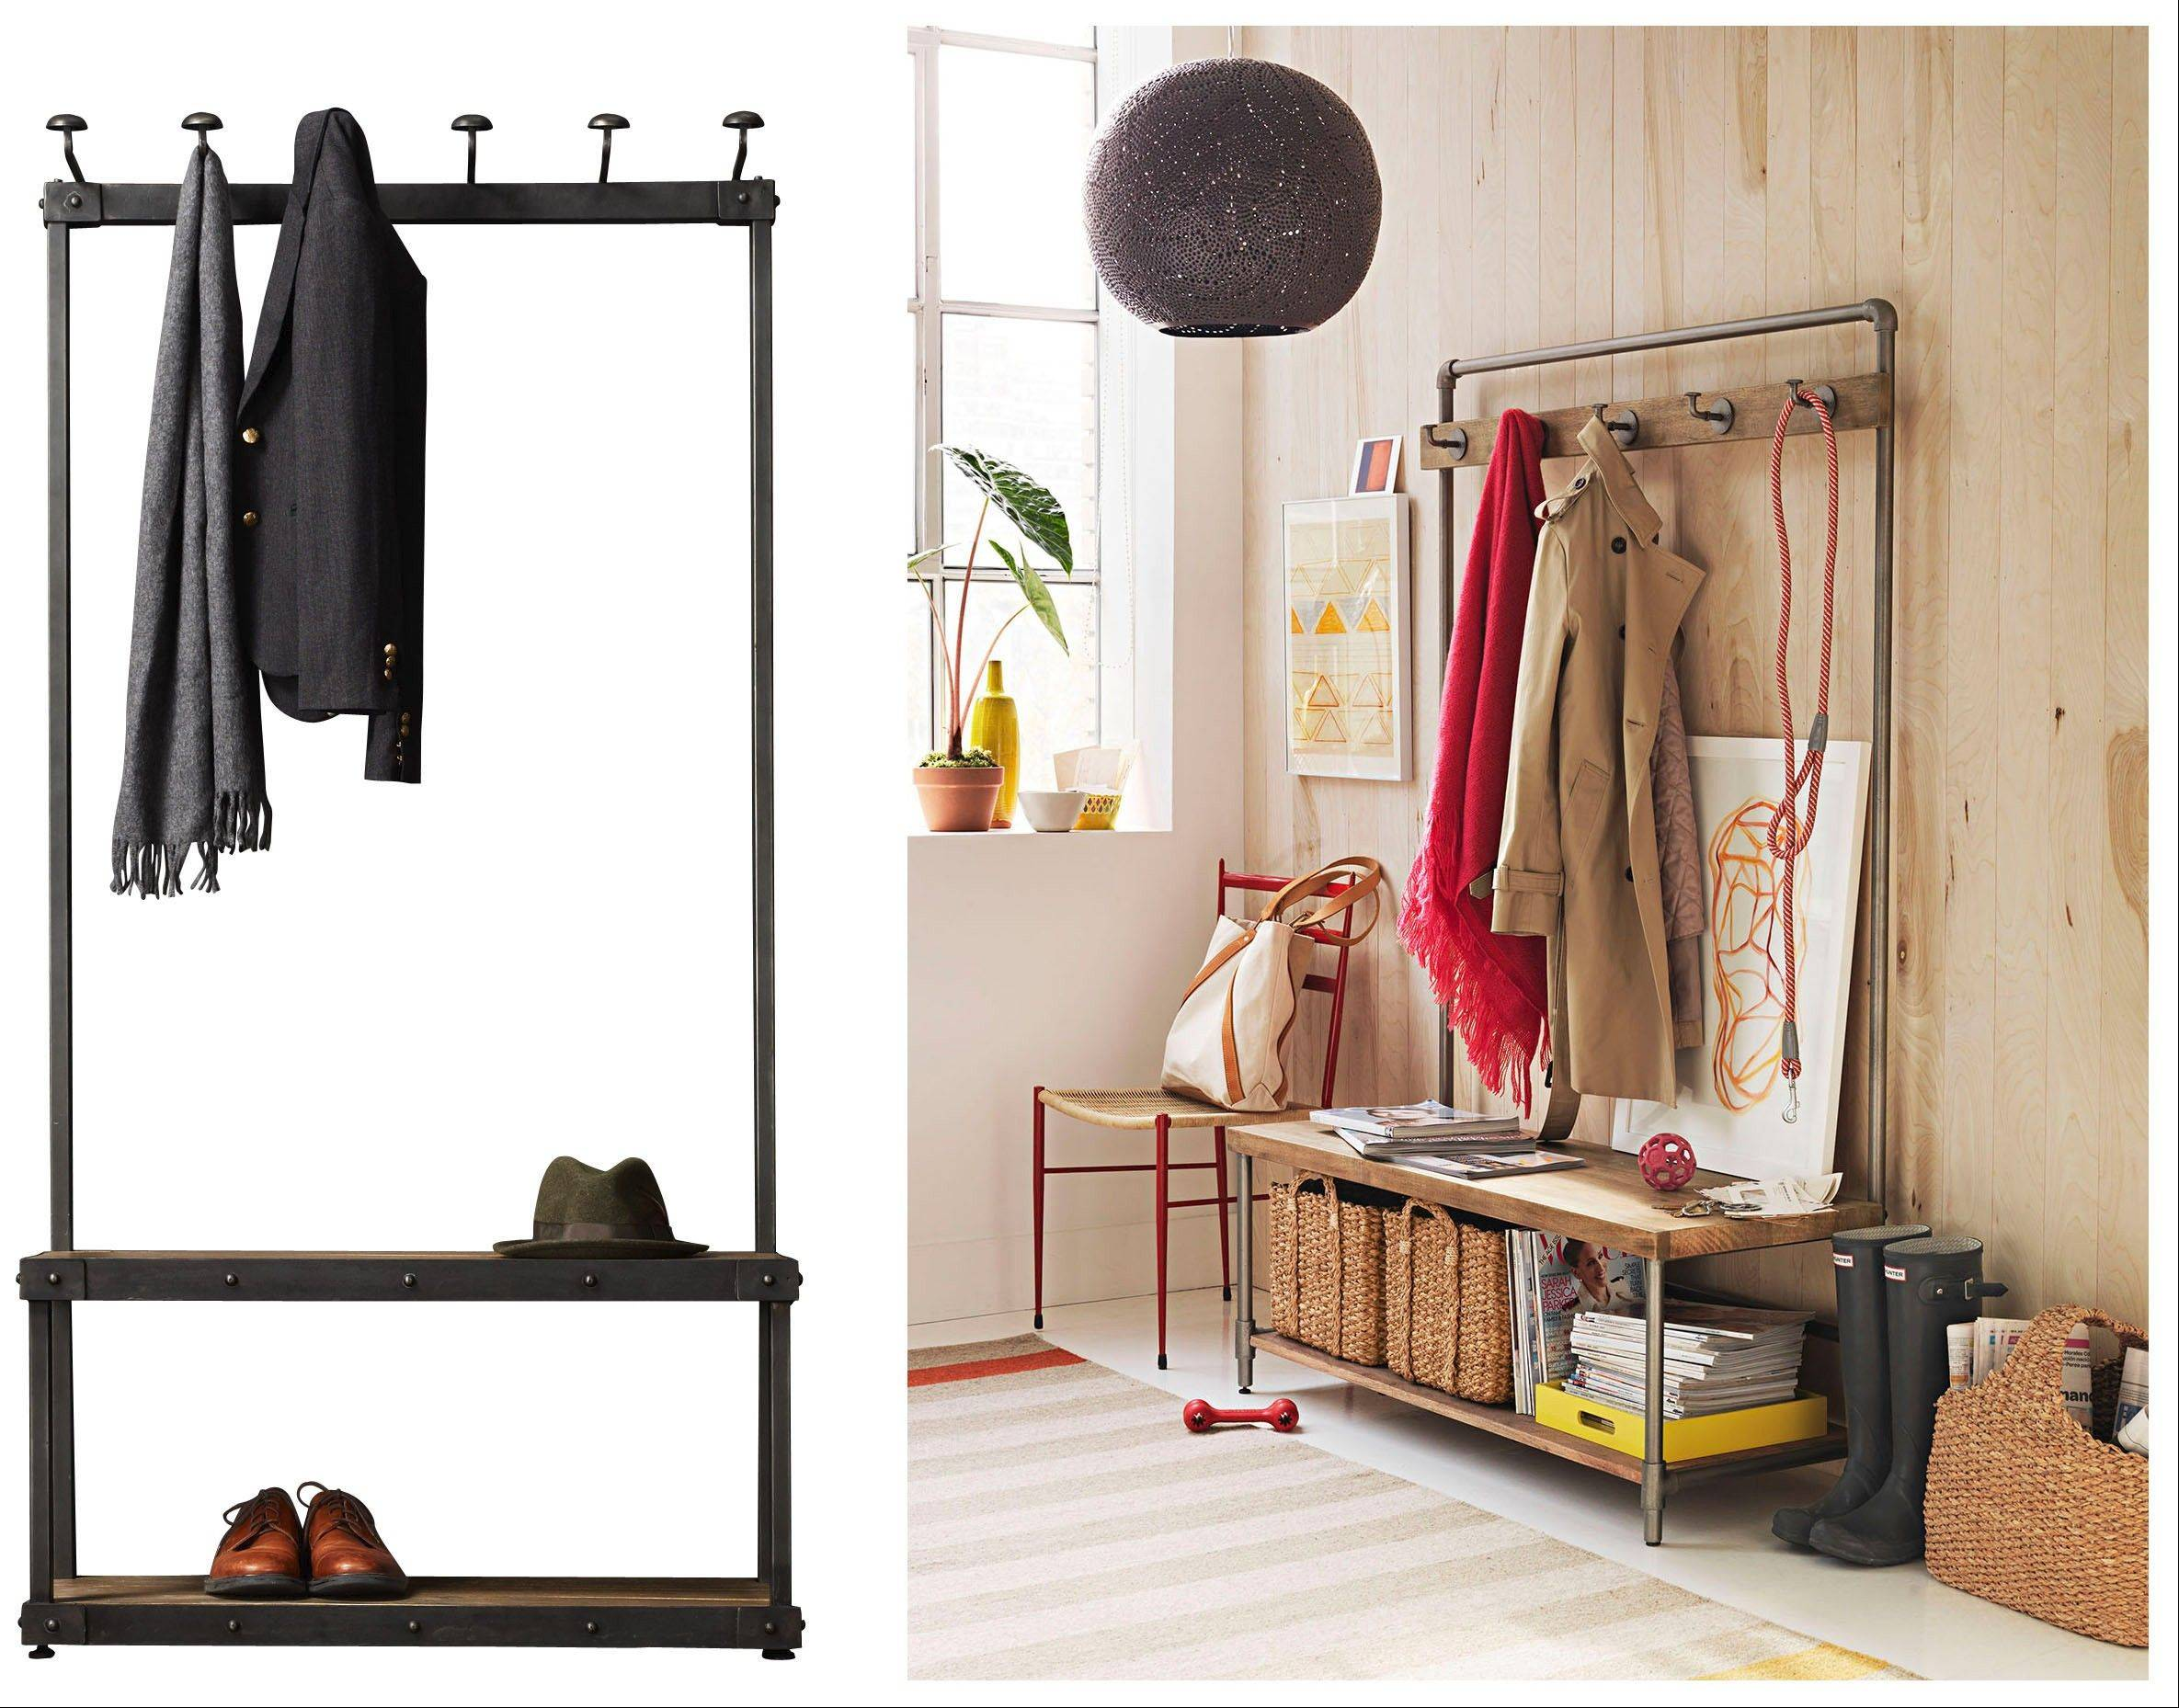 Corralling coats can tame the clutter in a foyer. At left, a coat rack bench from Restoration Hardware; at right, the Pipeline hall tree from West Elm.